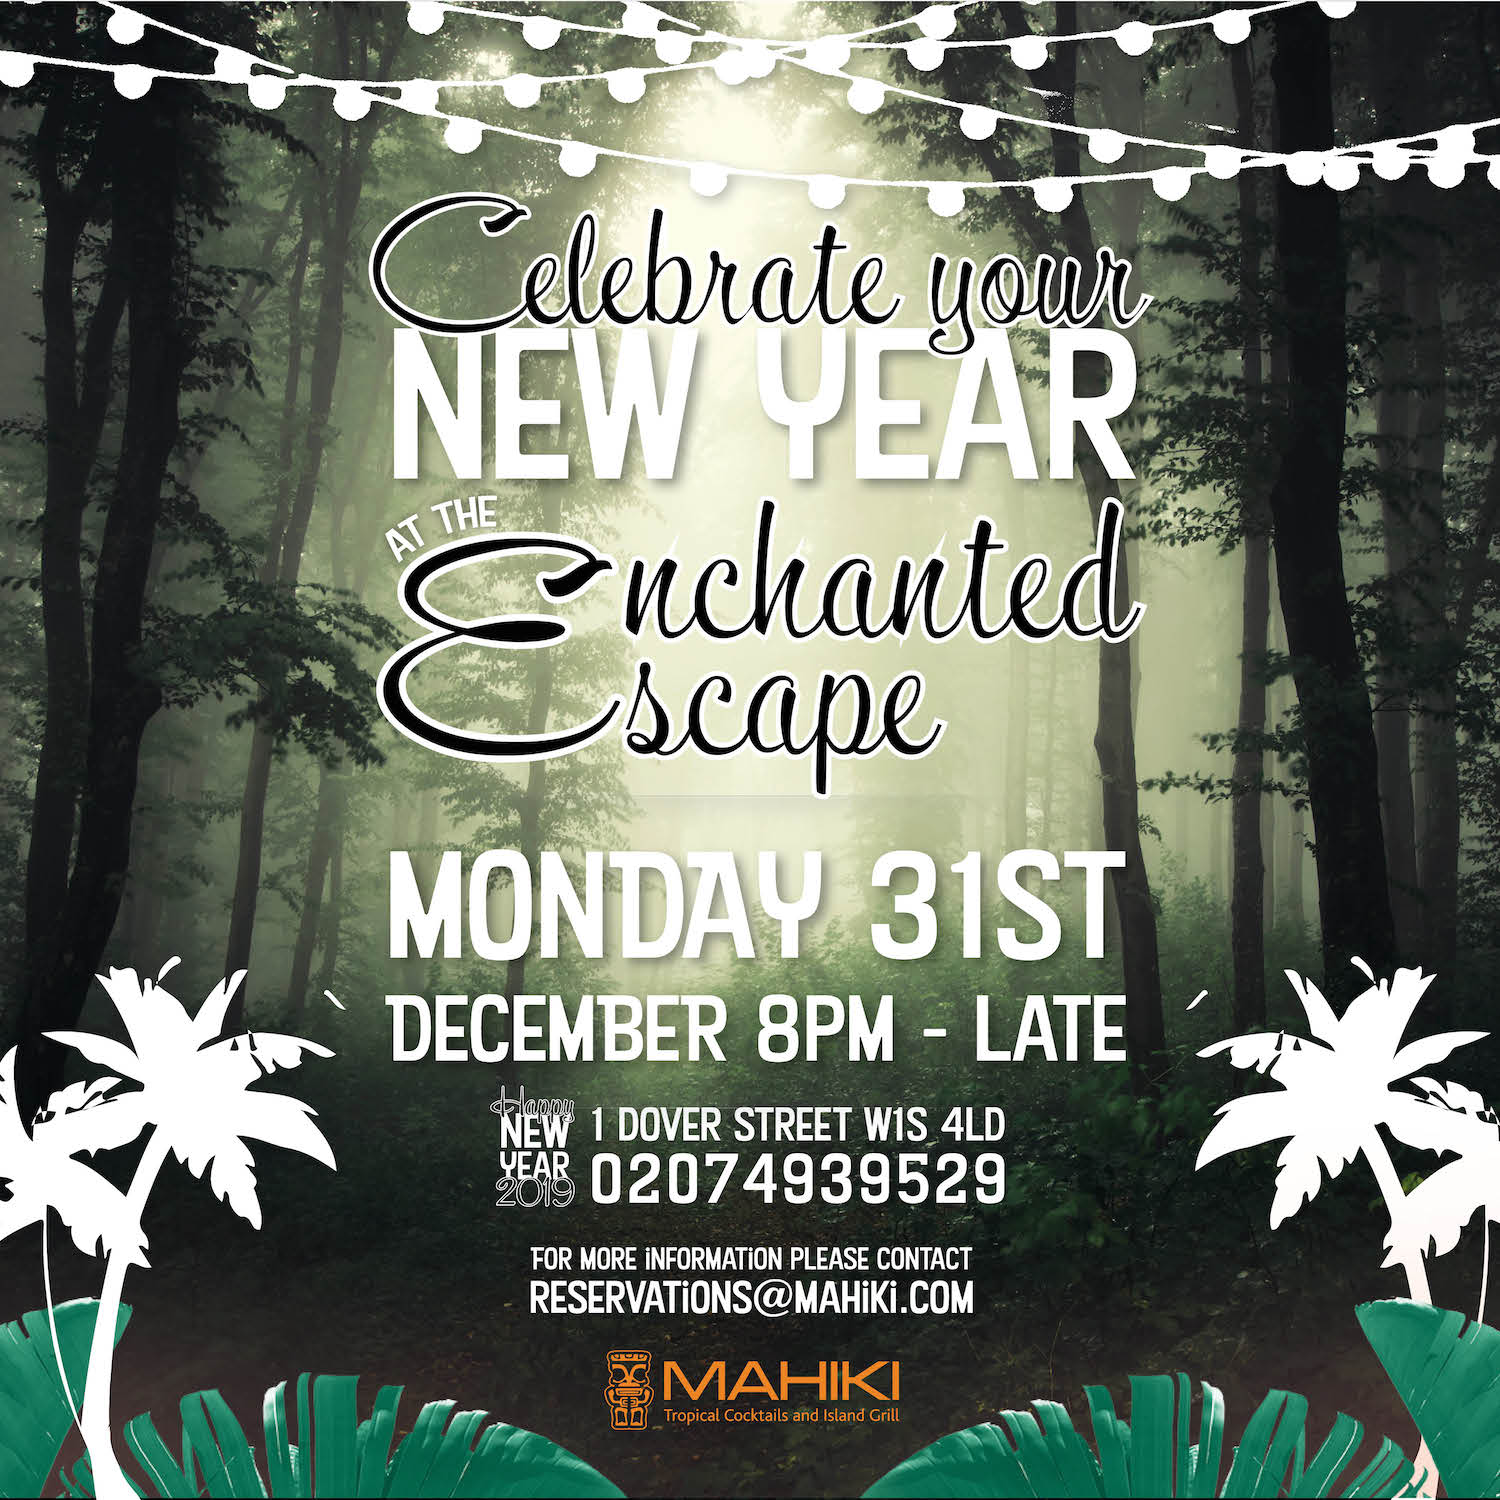 New Year's Eve Mahiki Mayfair